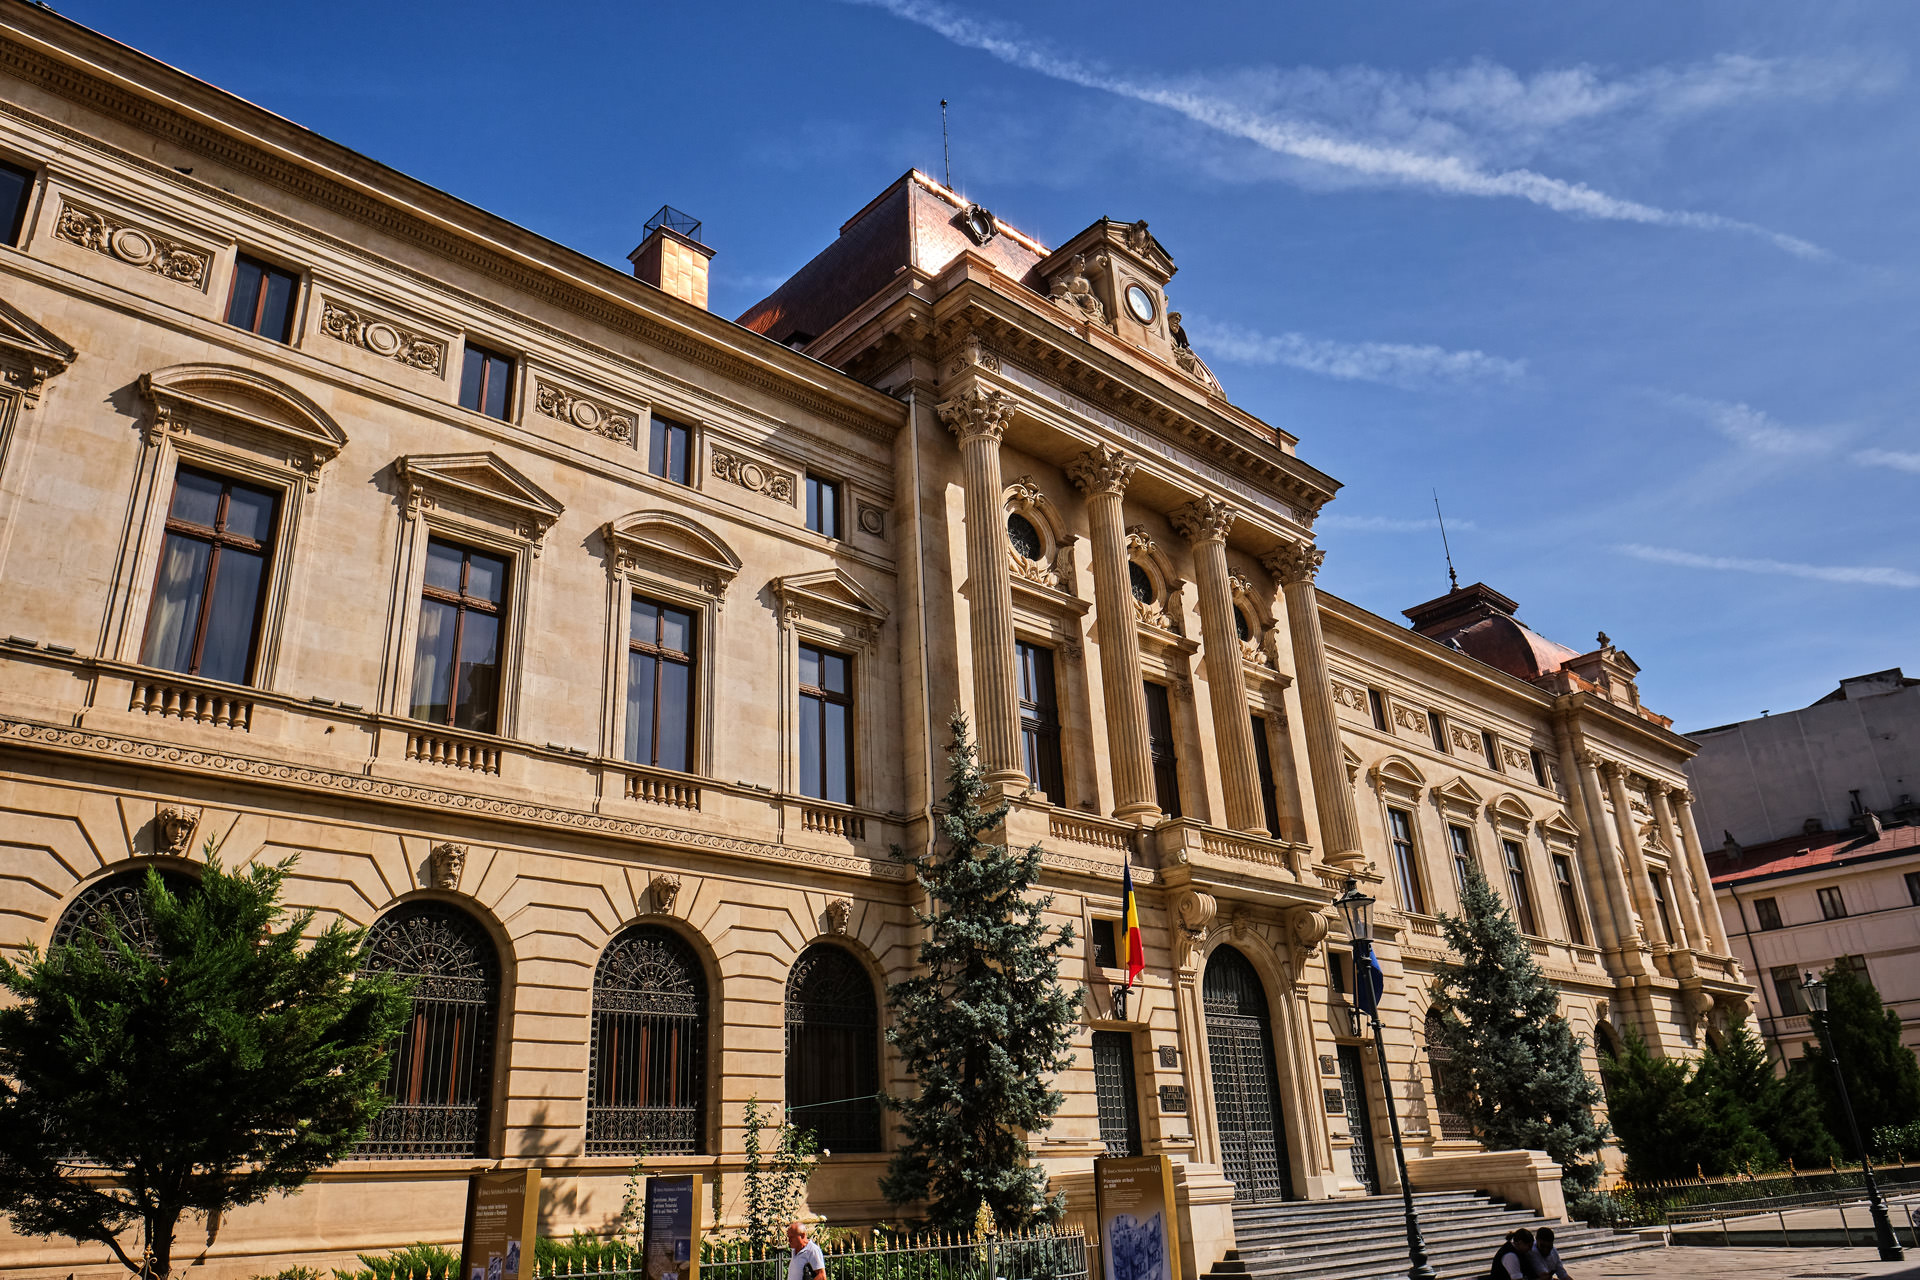 Bucharest Old Town - National Bank building